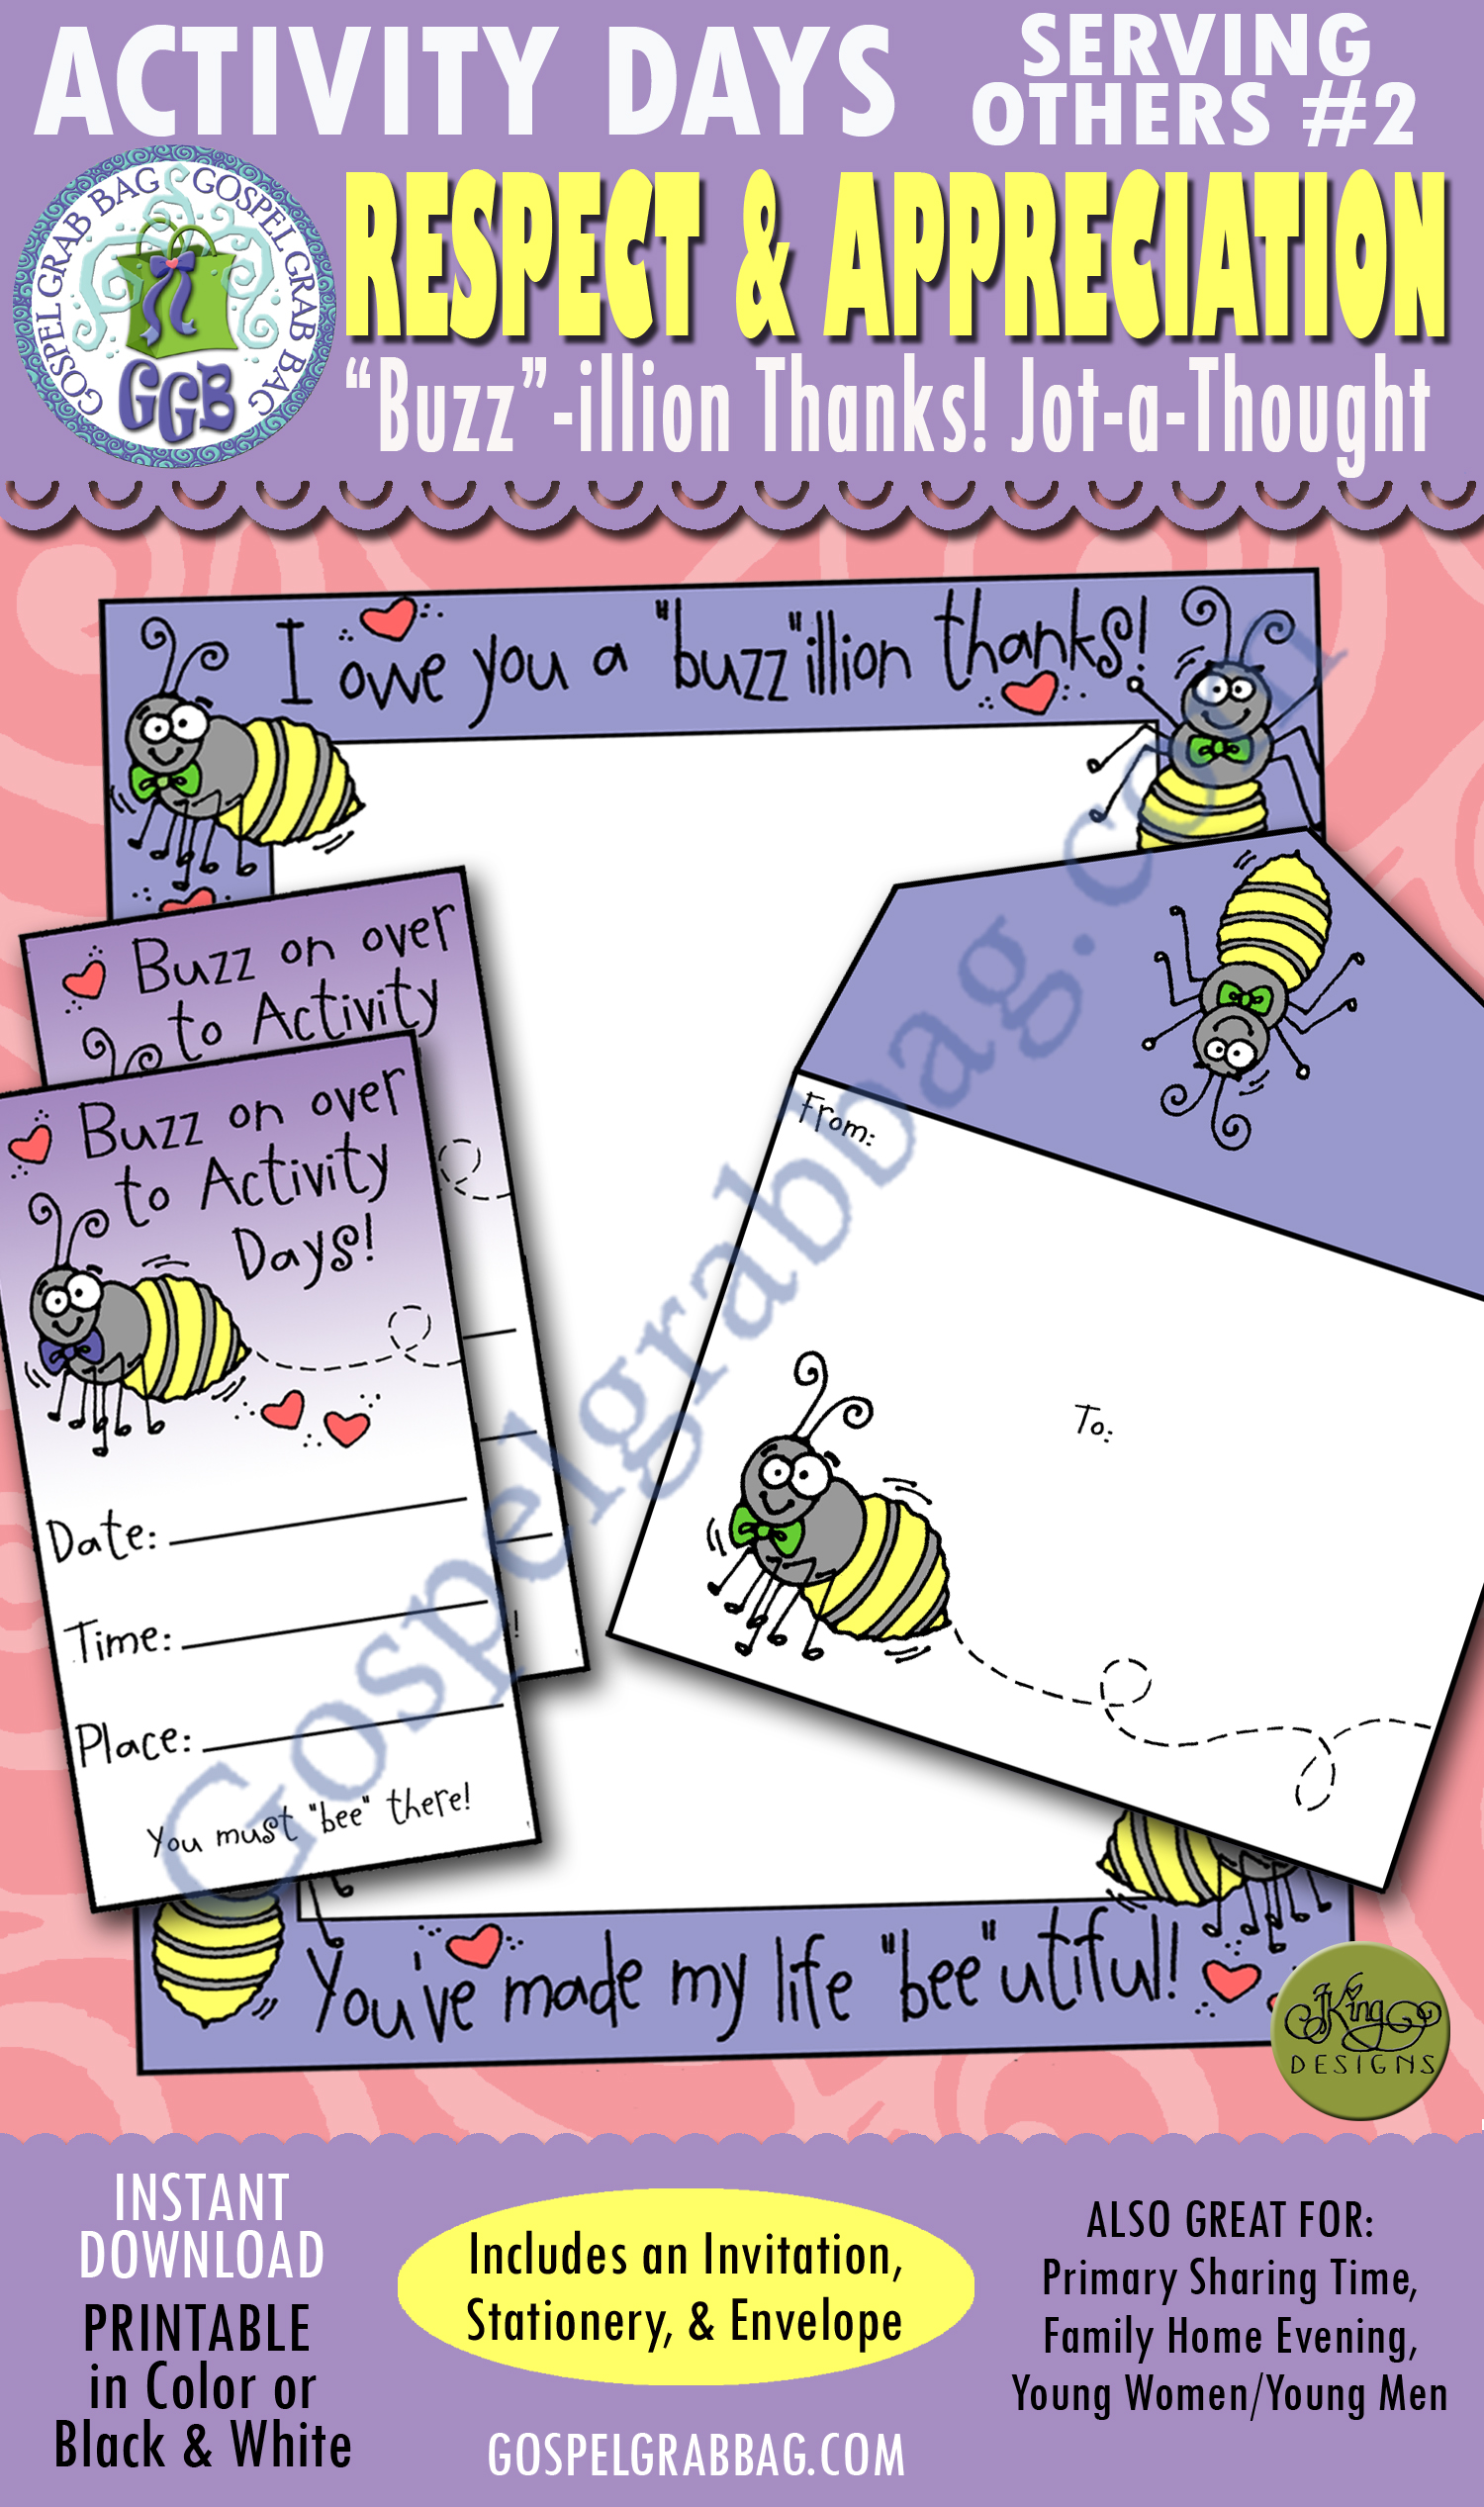 "$3.00 GRATITUDE: Activity Days SERVING OTHERS Goal 2 Invitation, Activity: I Will Express Appreciation - ""Buzz""illion Thanks jot-a-note stationery and envelope, & invitation"